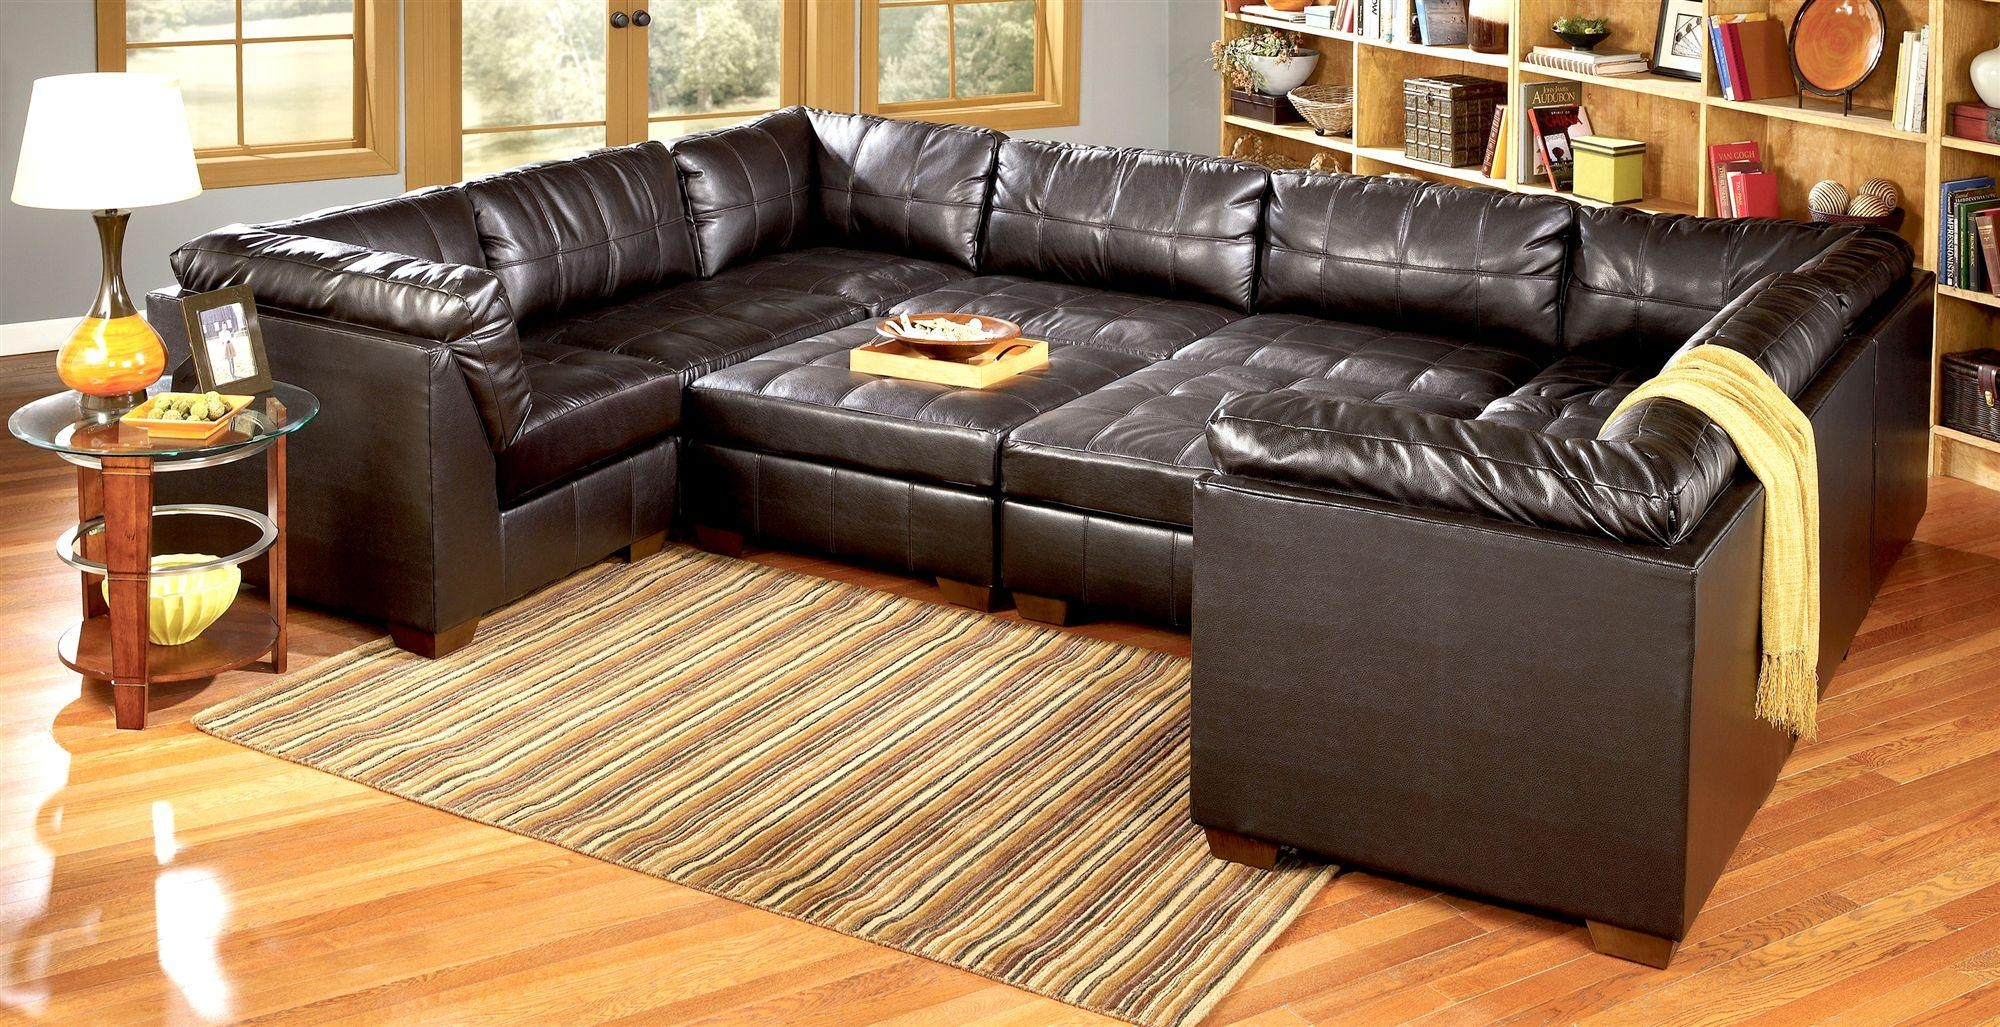 Furniture: 3 Piece Sectional Sofas And Pit Sectional For Gorgeous Throughout Pit Sofas (Image 5 of 20)